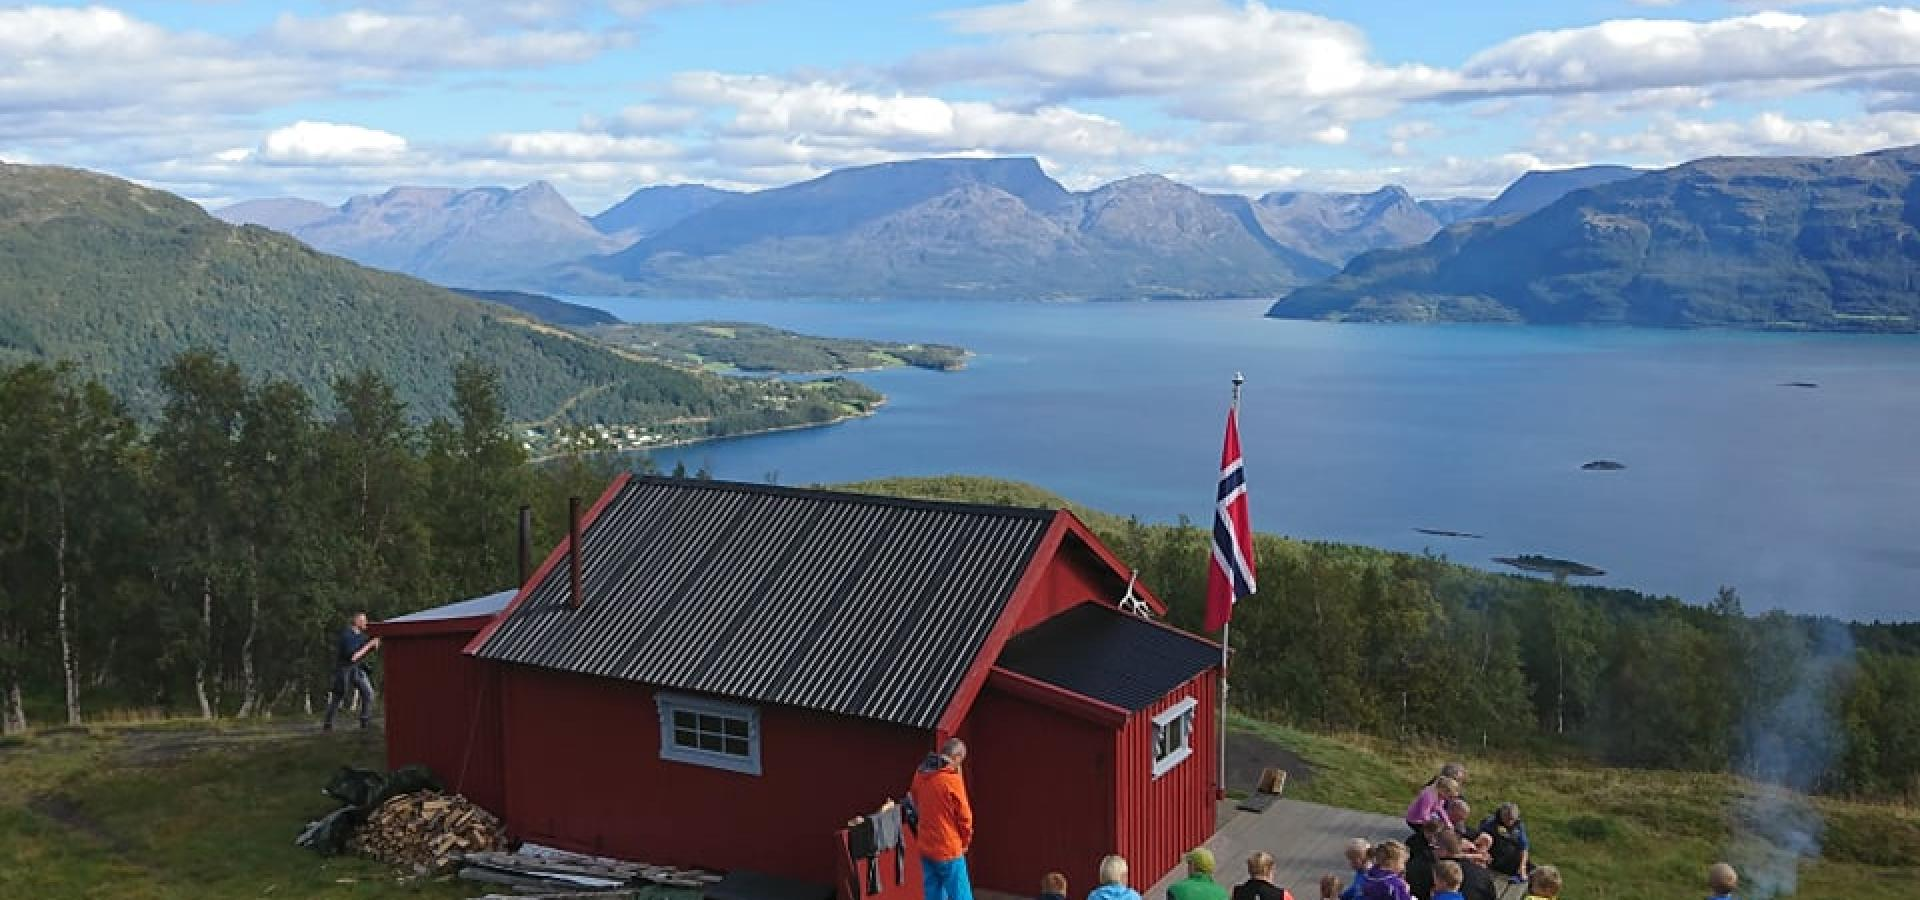 Red cabin in the mountains with views towards the fjord and mountains